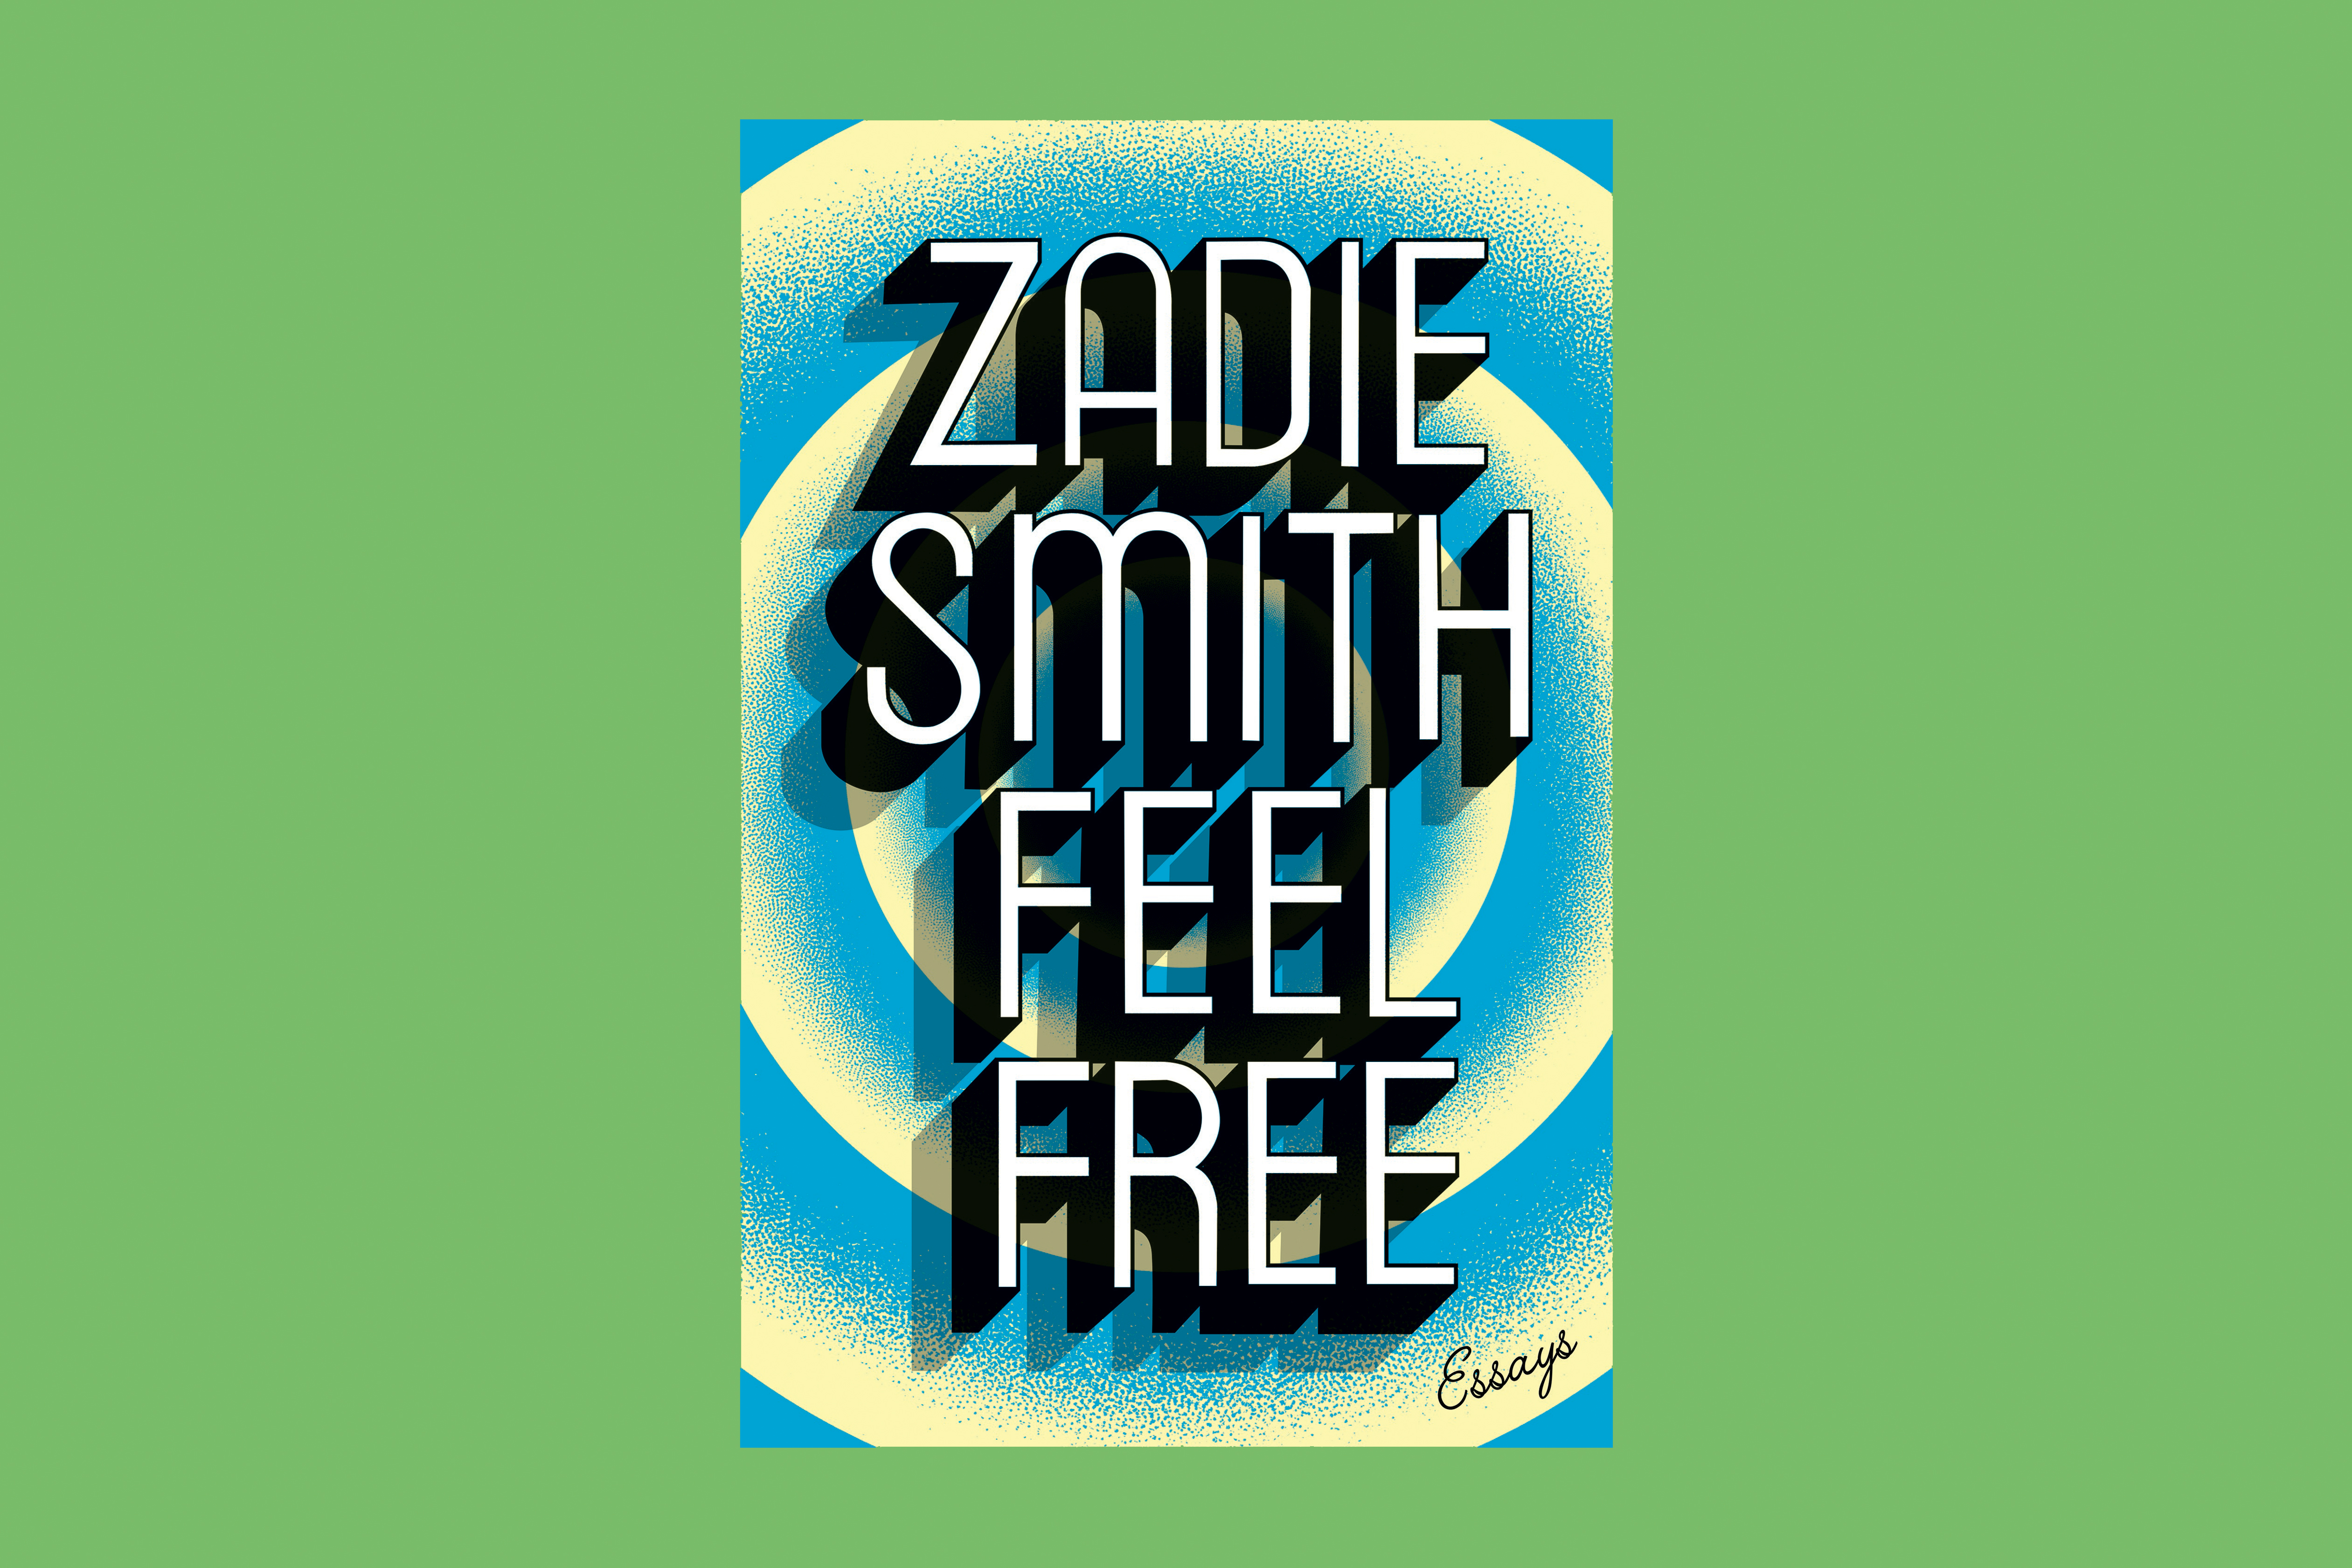 004 Zadie Smith Essays Feel Free Essay Wonderful Amazon Radio 4 Full